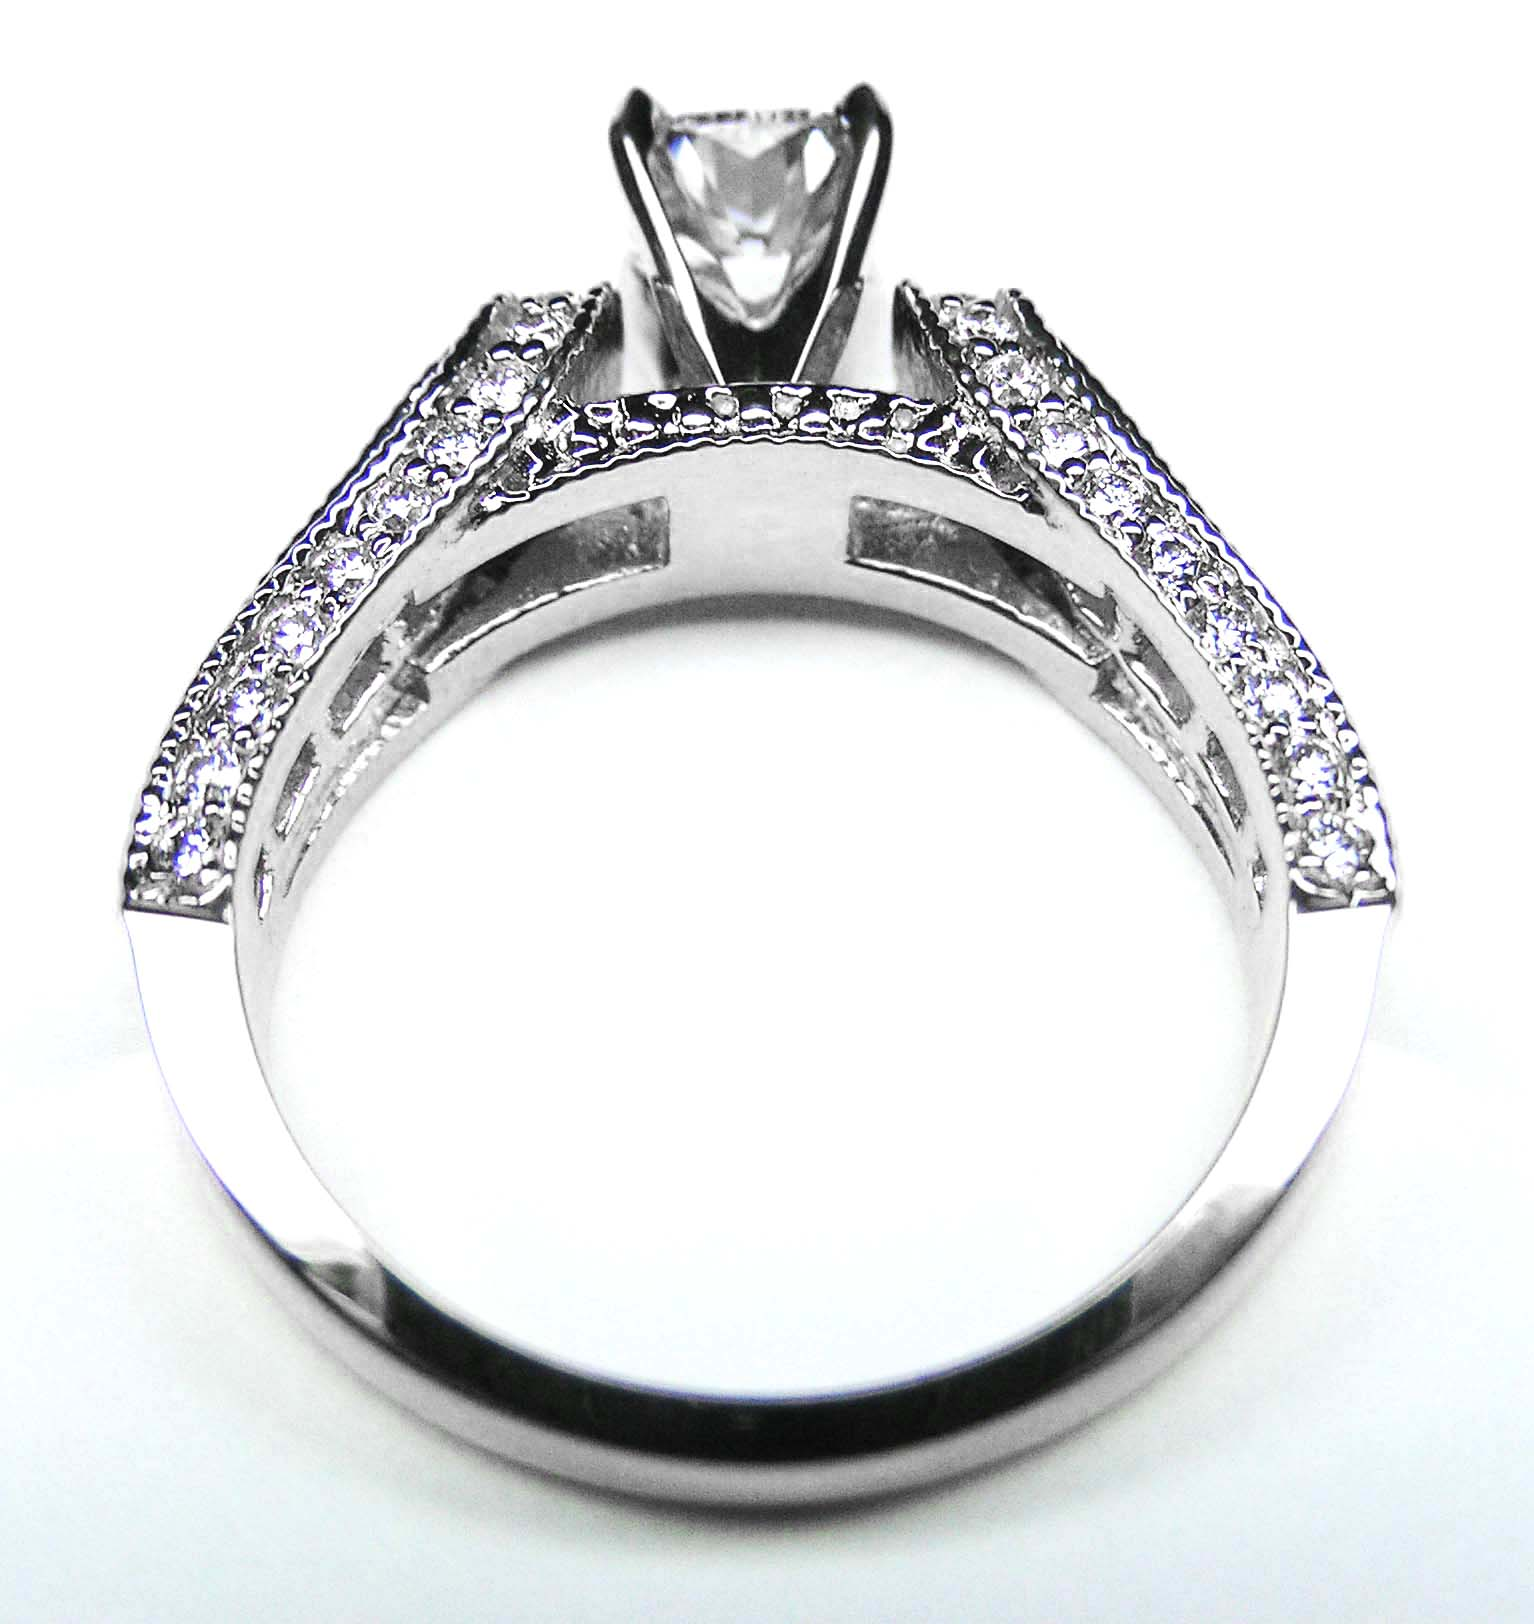 in 14k cushion diamond vintage horseshoe engagement ring baguette diamonds milligrained band 085 tcw - Horseshoe Wedding Rings